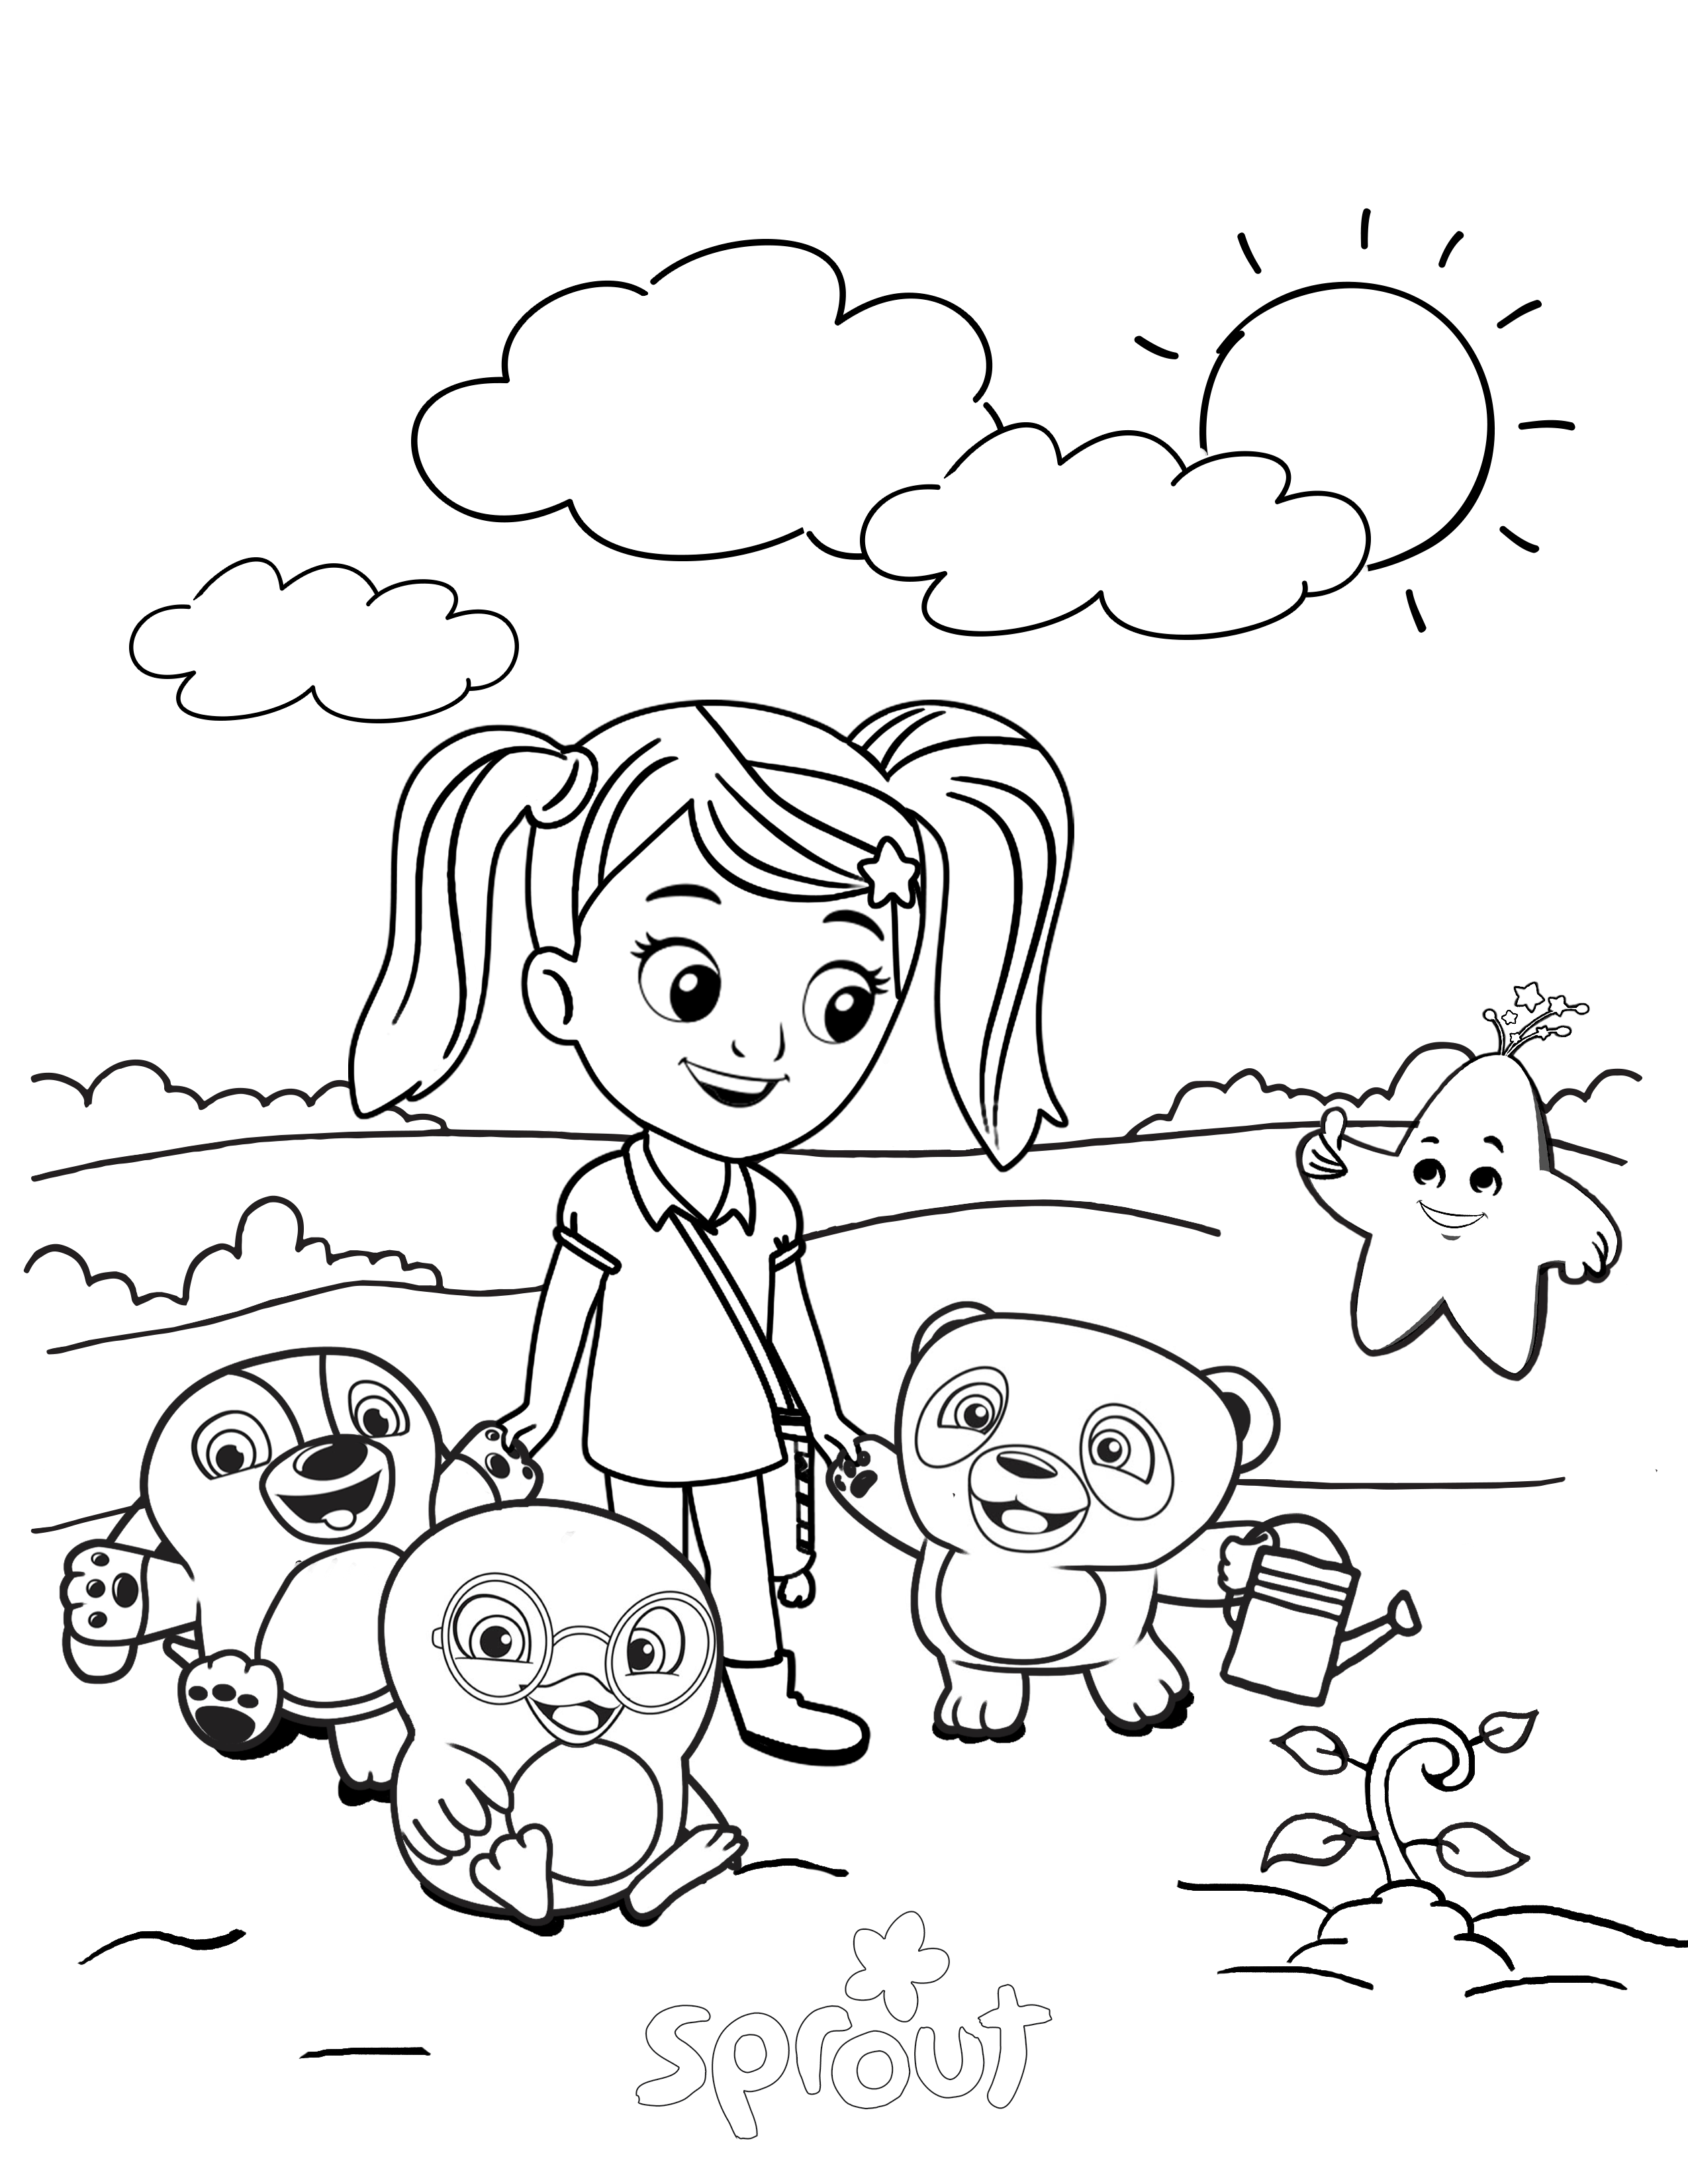 sprouts tv coloring pages - photo#41